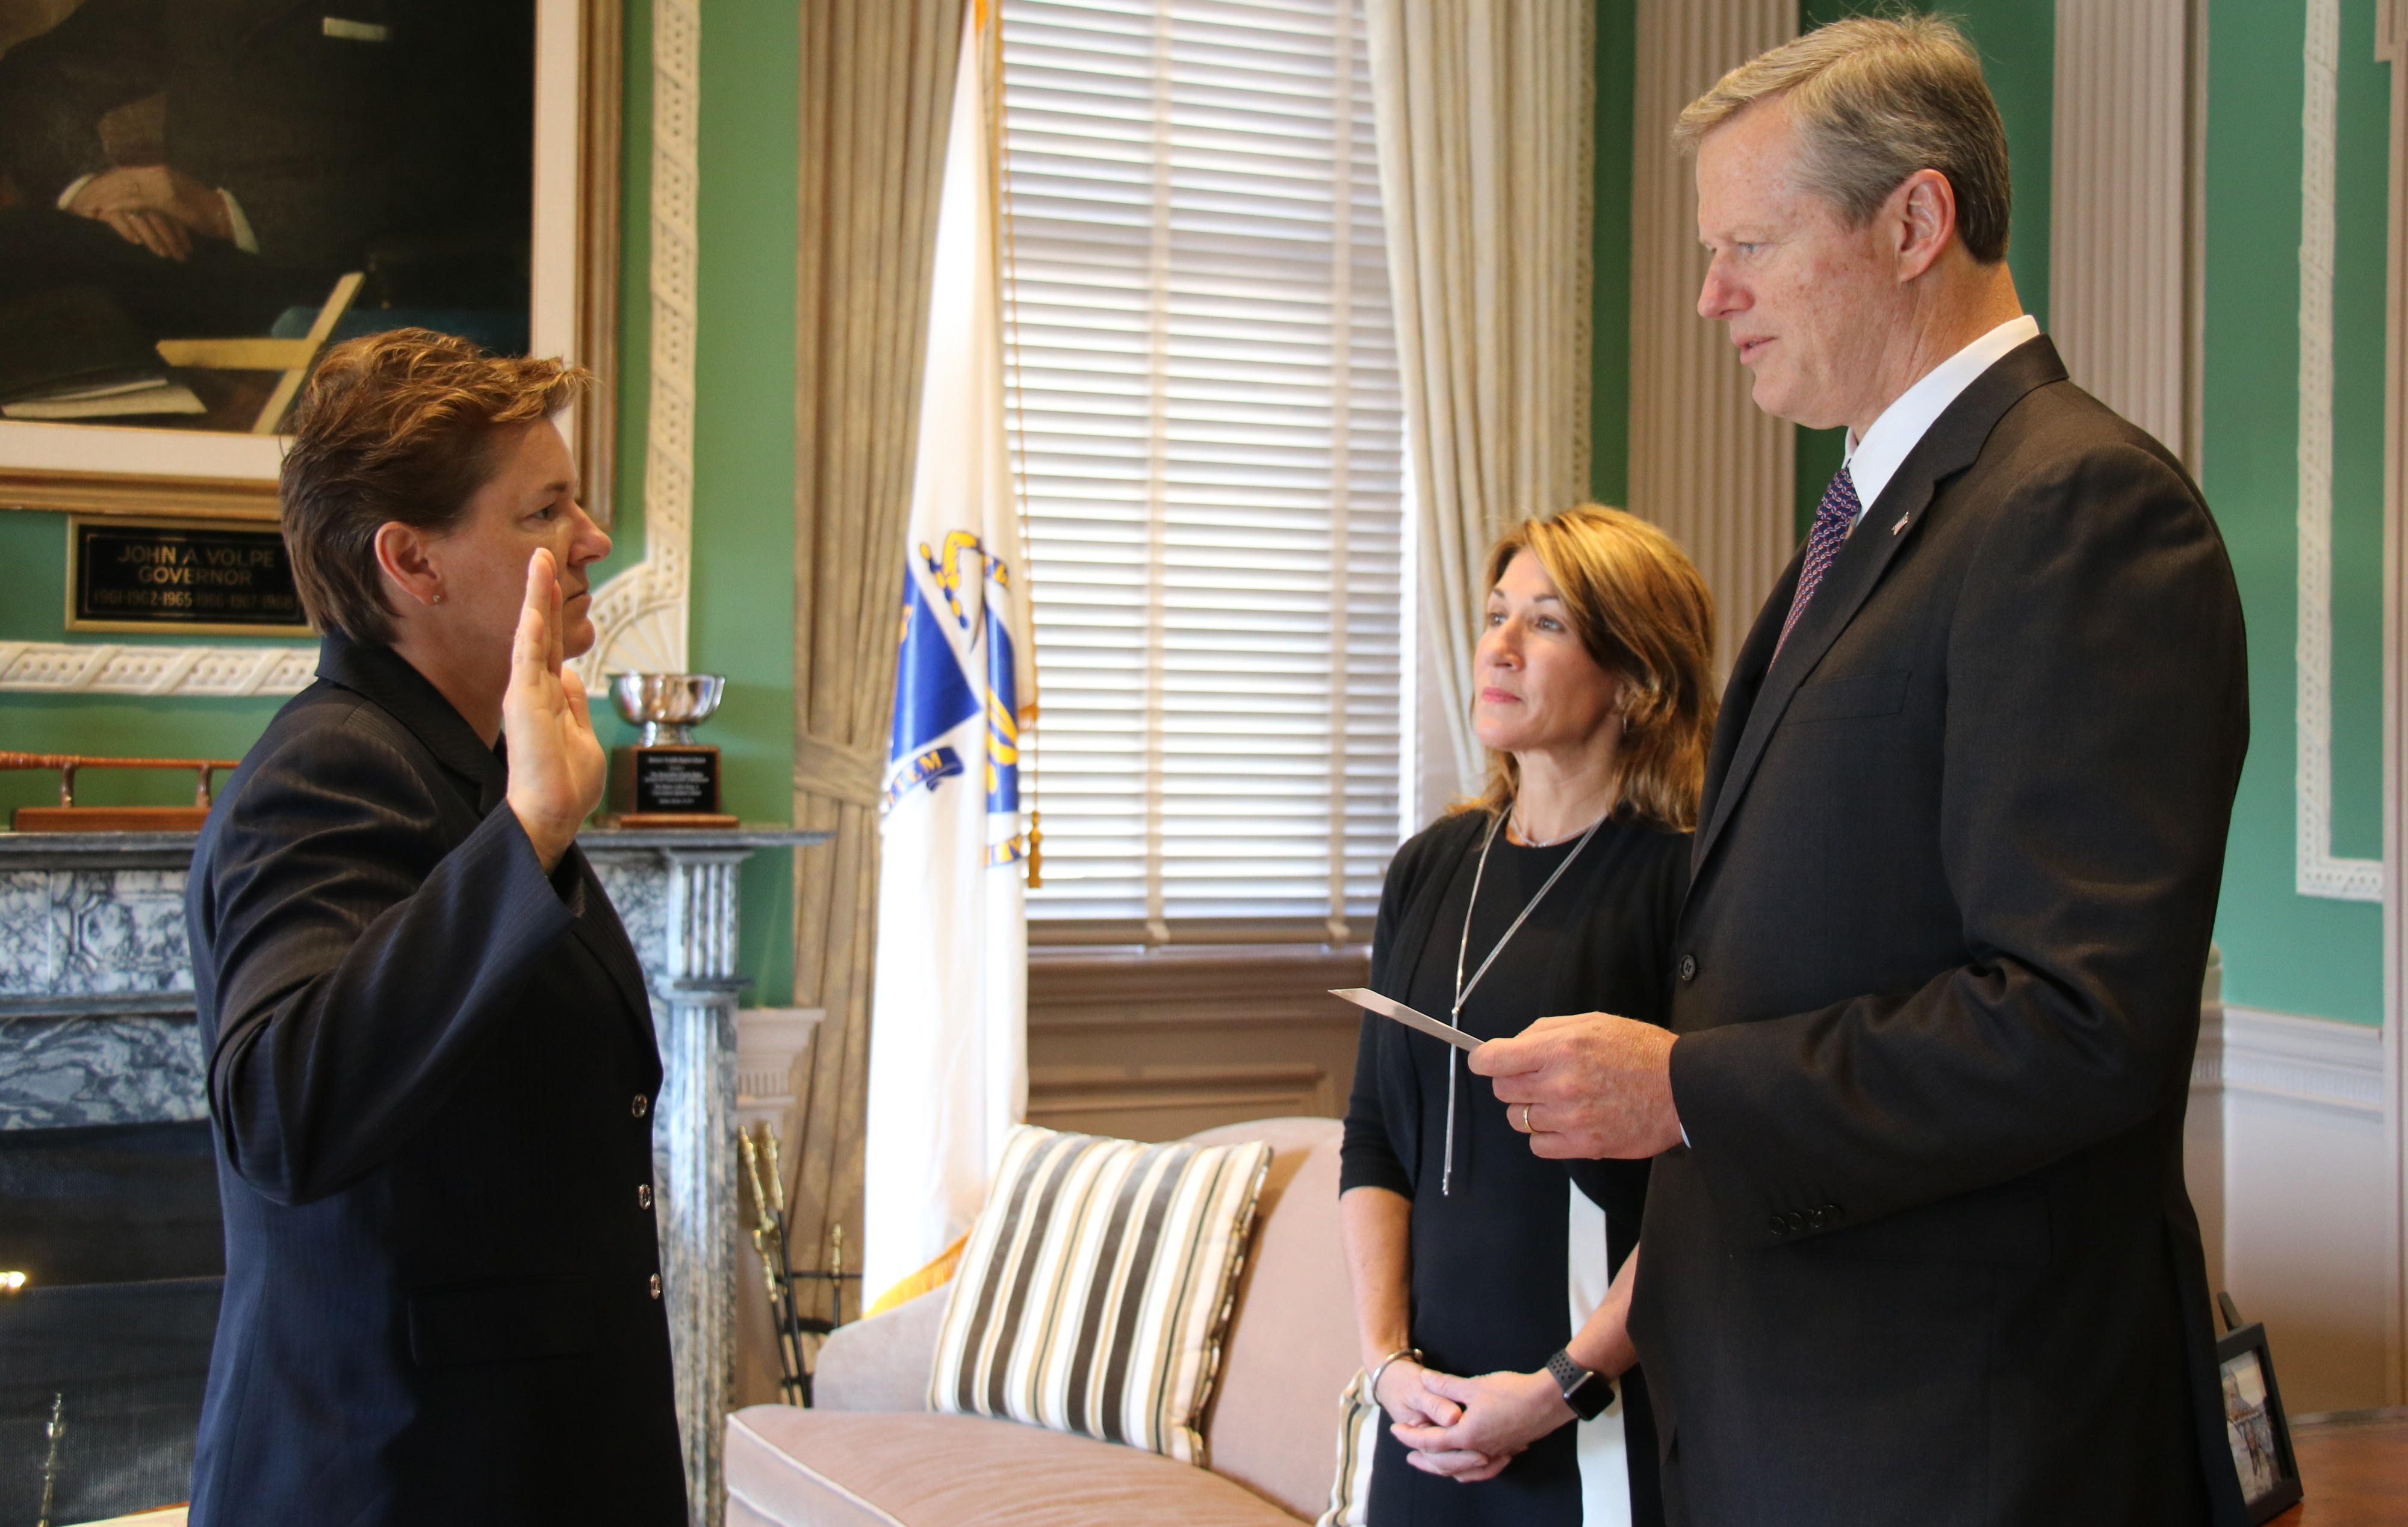 Charlie baker swore in new state police superintendent col kerry gilpin in a ceremony wednesday which was not open to press photo courtesy governor s